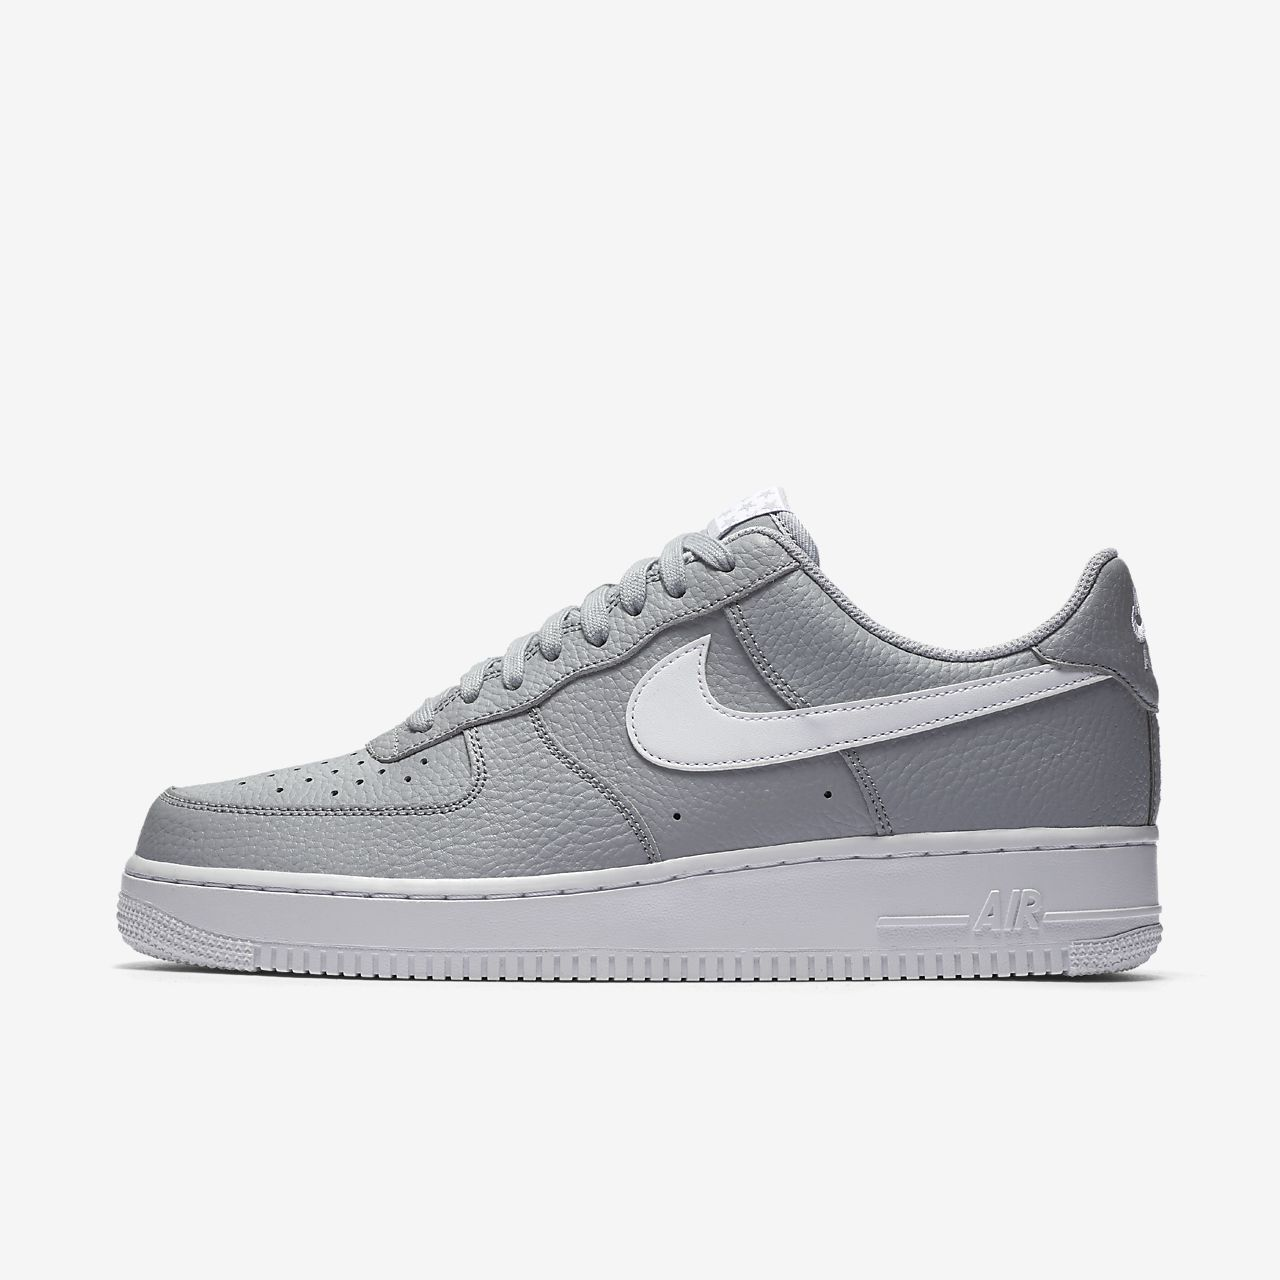 best loved a8ca2 1cc46 ... Low Resolution Nike Air Force 1 07 Mens Shoe Nike Air Force 1 07 Mens  Shoe ...